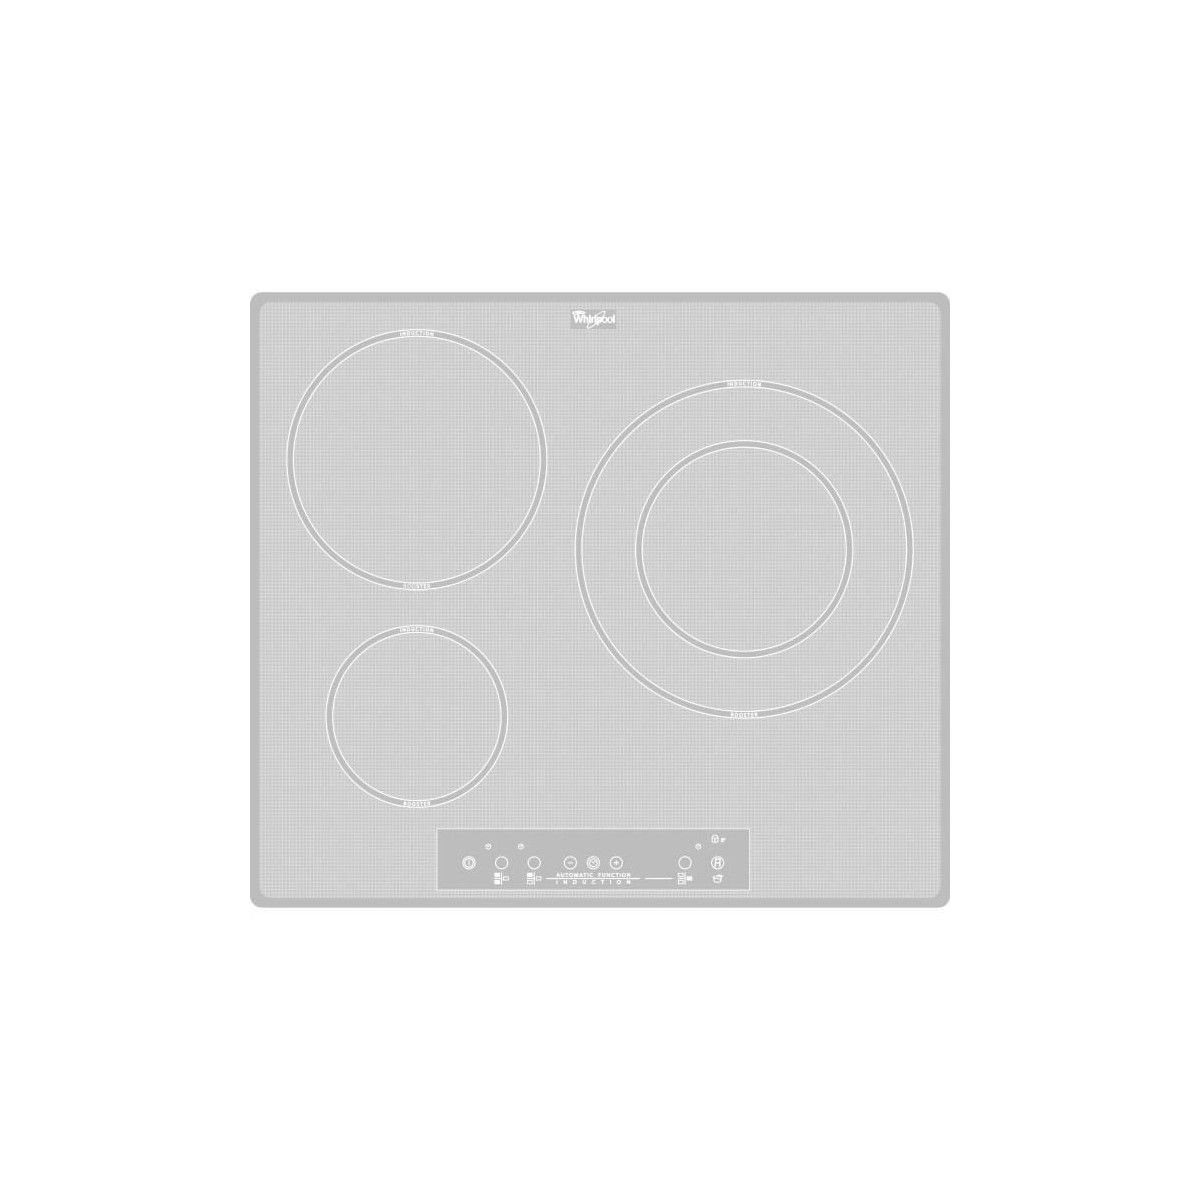 Table De Cuisson Vitrocéramique Pas Cher whirlpool acm680newh - table de cuisson induction - 3 zones - 7000w - l58 x  p49cm - revetement verre - blanc